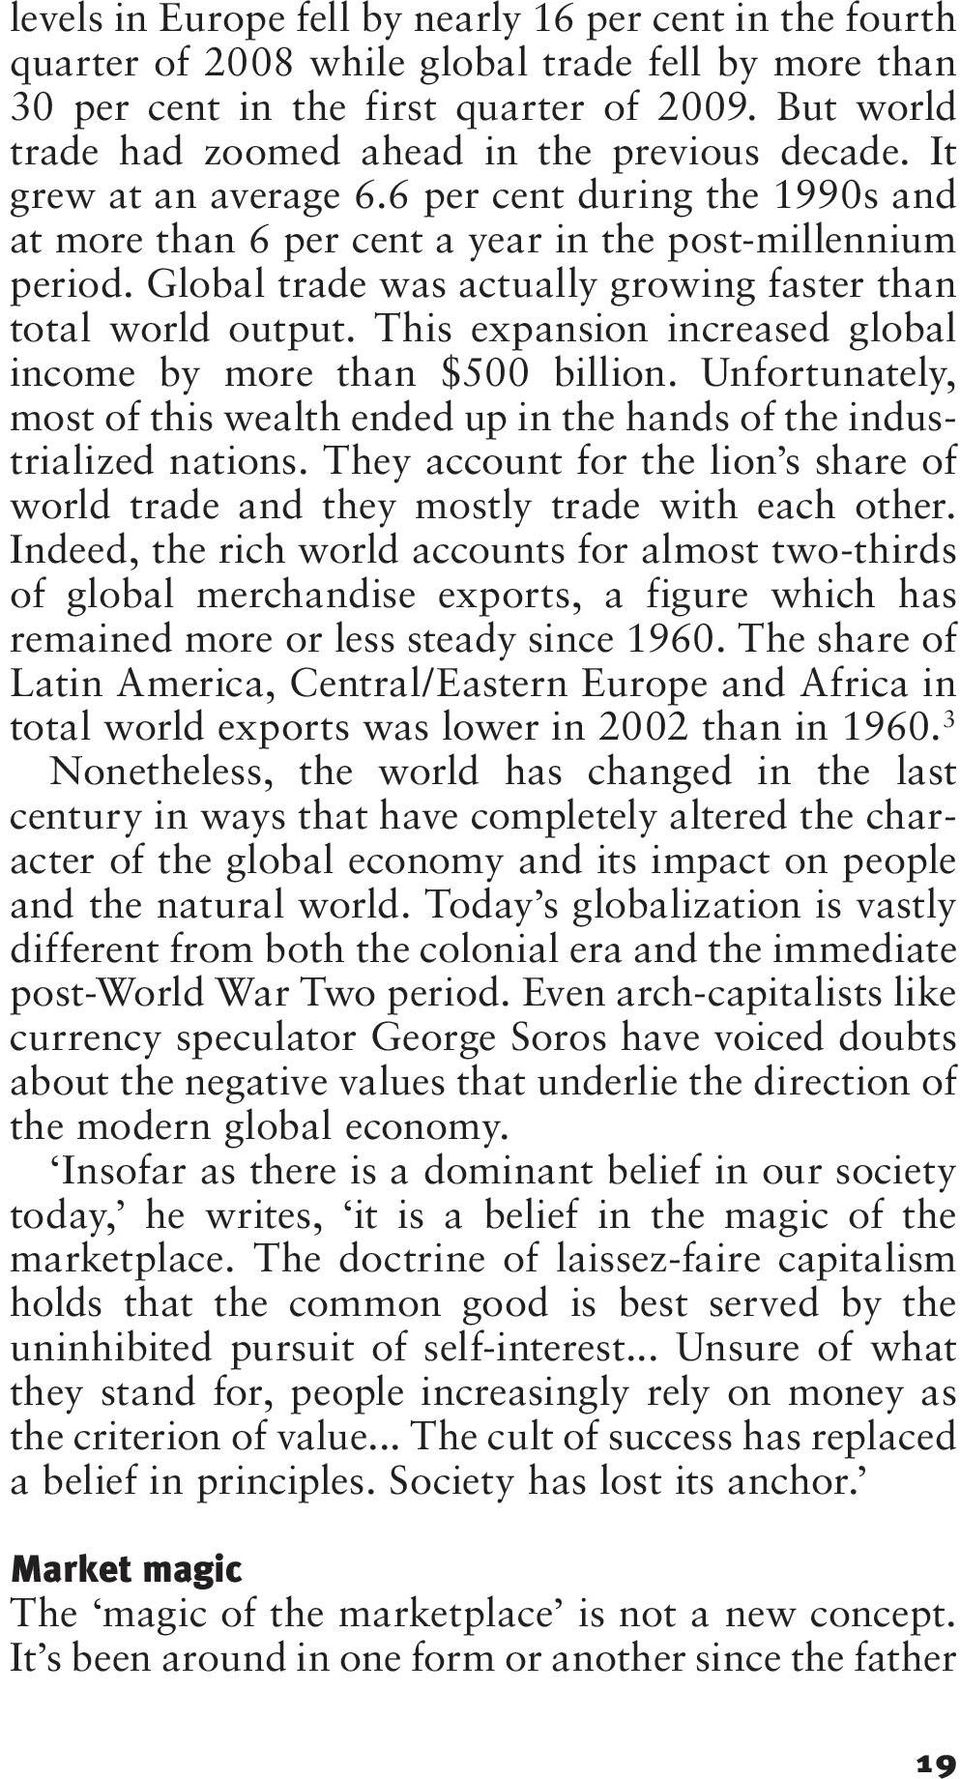 Global trade was actually growing faster than total world output. This expansion increased global income by more than $500 billion.